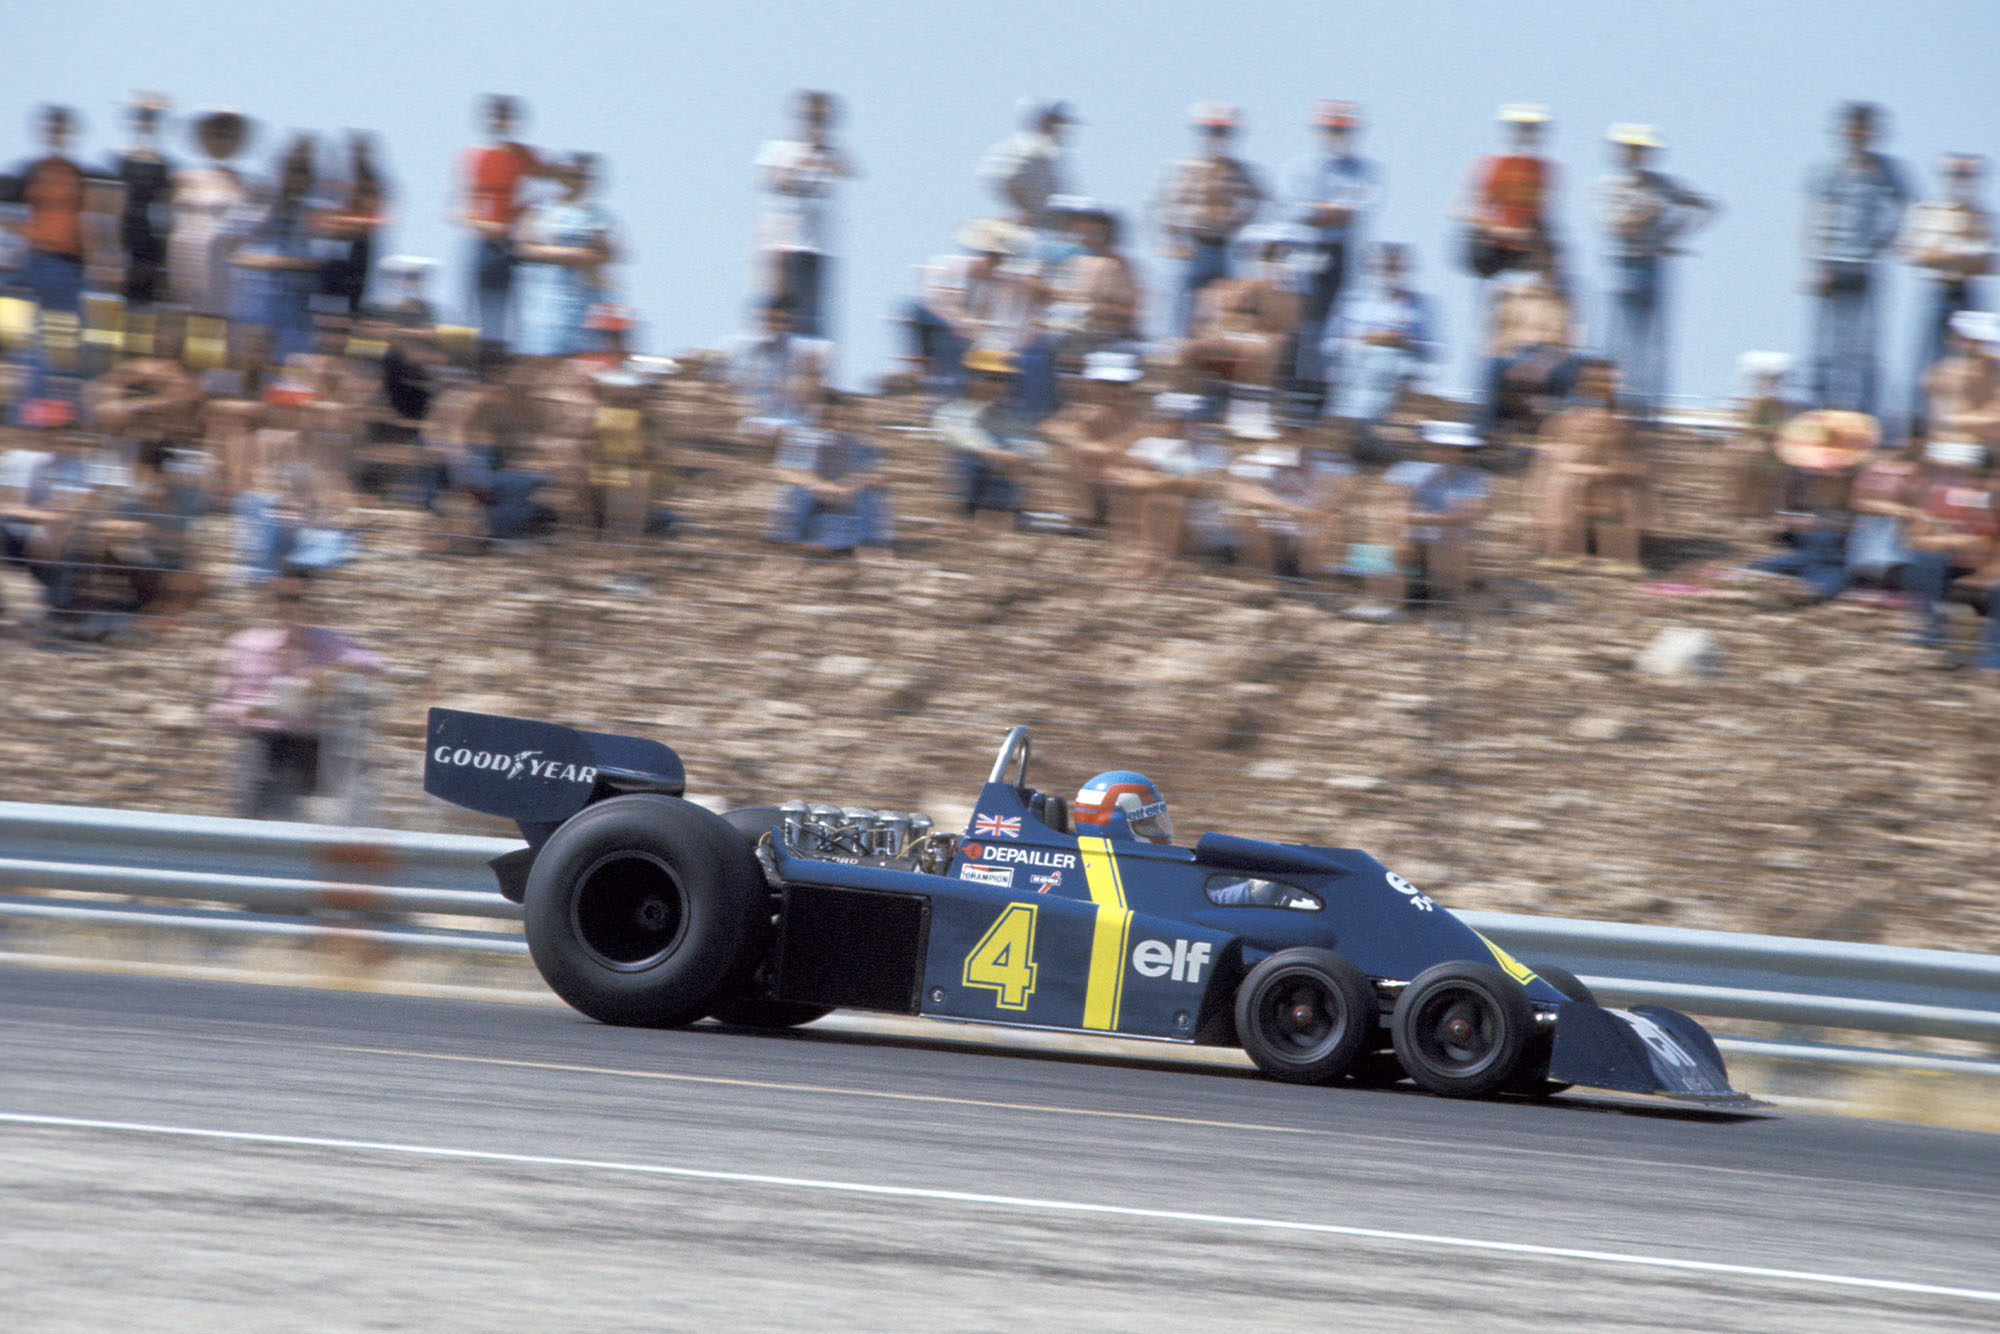 Patrick Depailler driving for Tyrrell at the 1976 French Grand Prix.